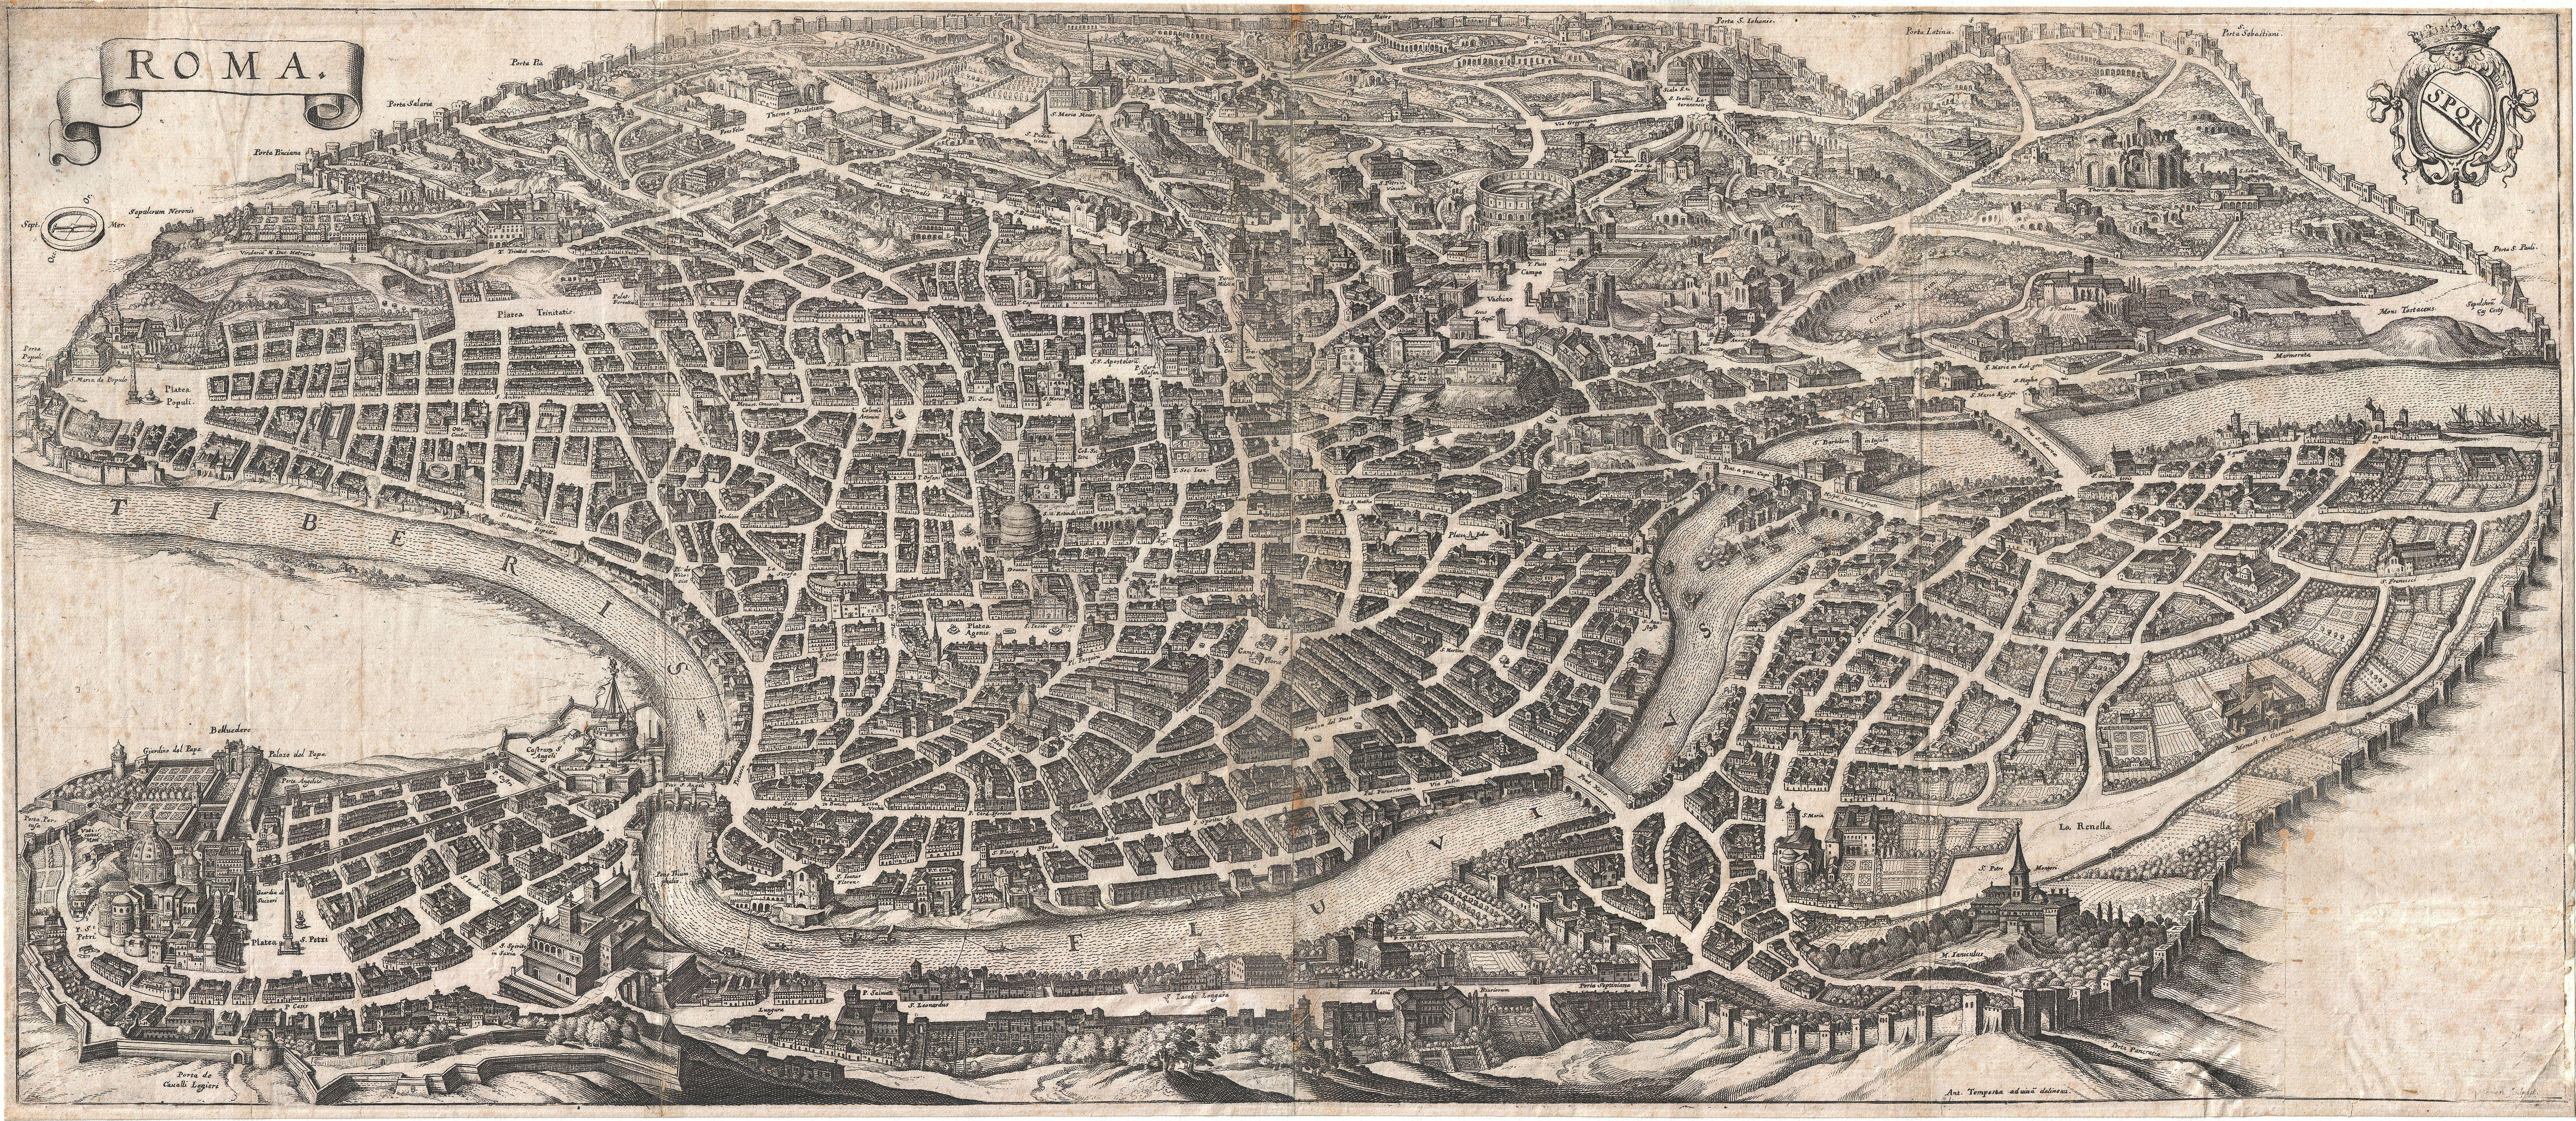 File:1652 Merian Panoramic View or Map of Rome, Italy ... on verona italy map, city of los angeles california map, city of beijing china map, city of zurich switzerland map, city of calgary canada map, city of salvador brazil map, city of manaus brazil map, city of buenos aires argentina map, city of izmir turkey map, city of tegucigalpa honduras map, city of marseille france map, rome hop on map, city of germany map, rome city tourist map, city of reykjavik iceland map, city of caracas venezuela map, city of manila philippines map, city of belgrade serbia map, city of spain map, city of monterrey mexico map,